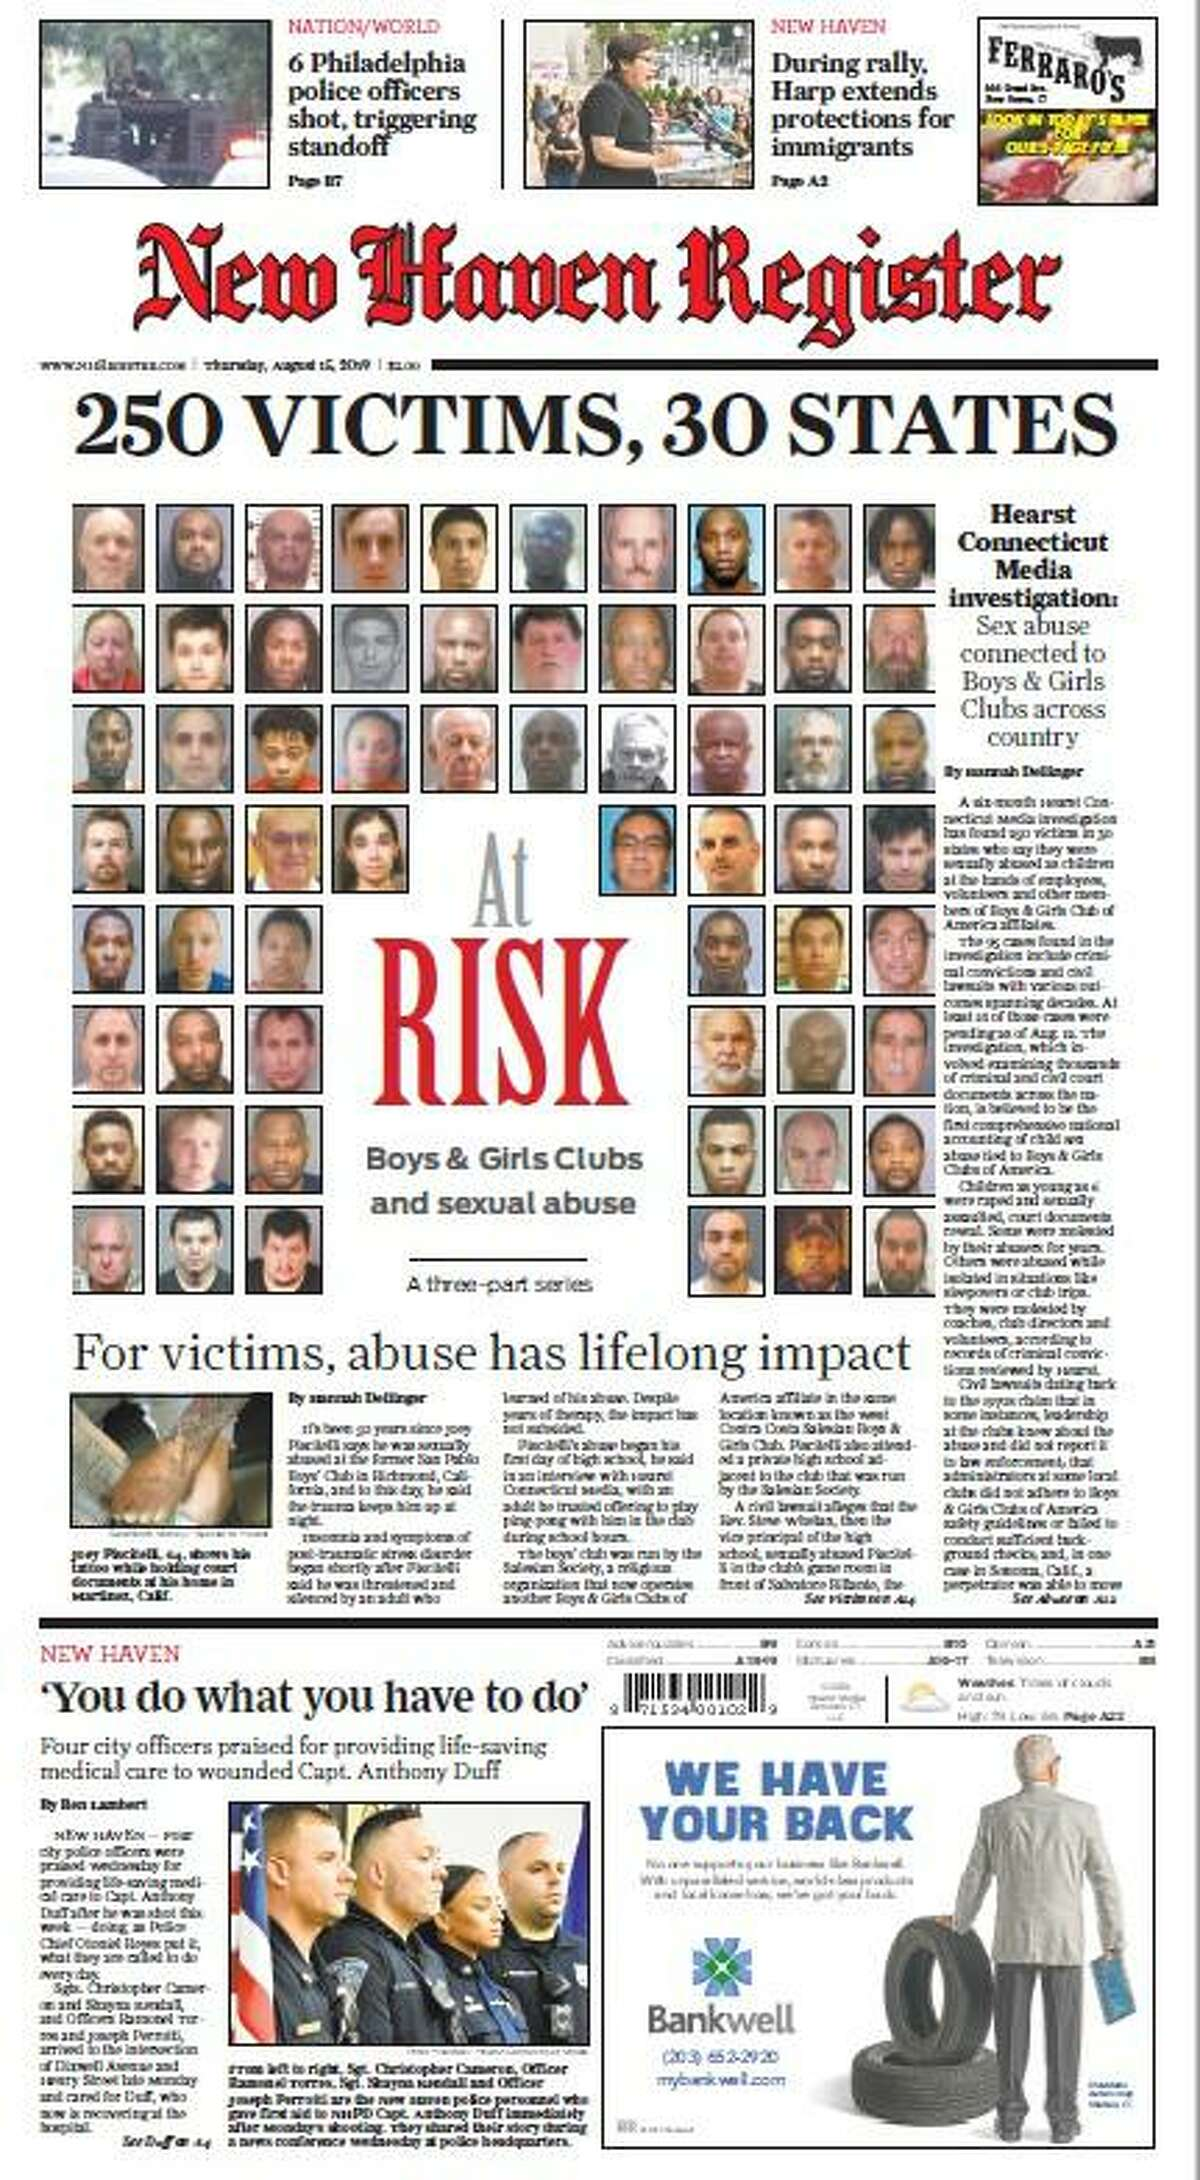 One of our front pages for Day 1 of the At Risk: Boys & Girls Clubs and sexual abuse project.